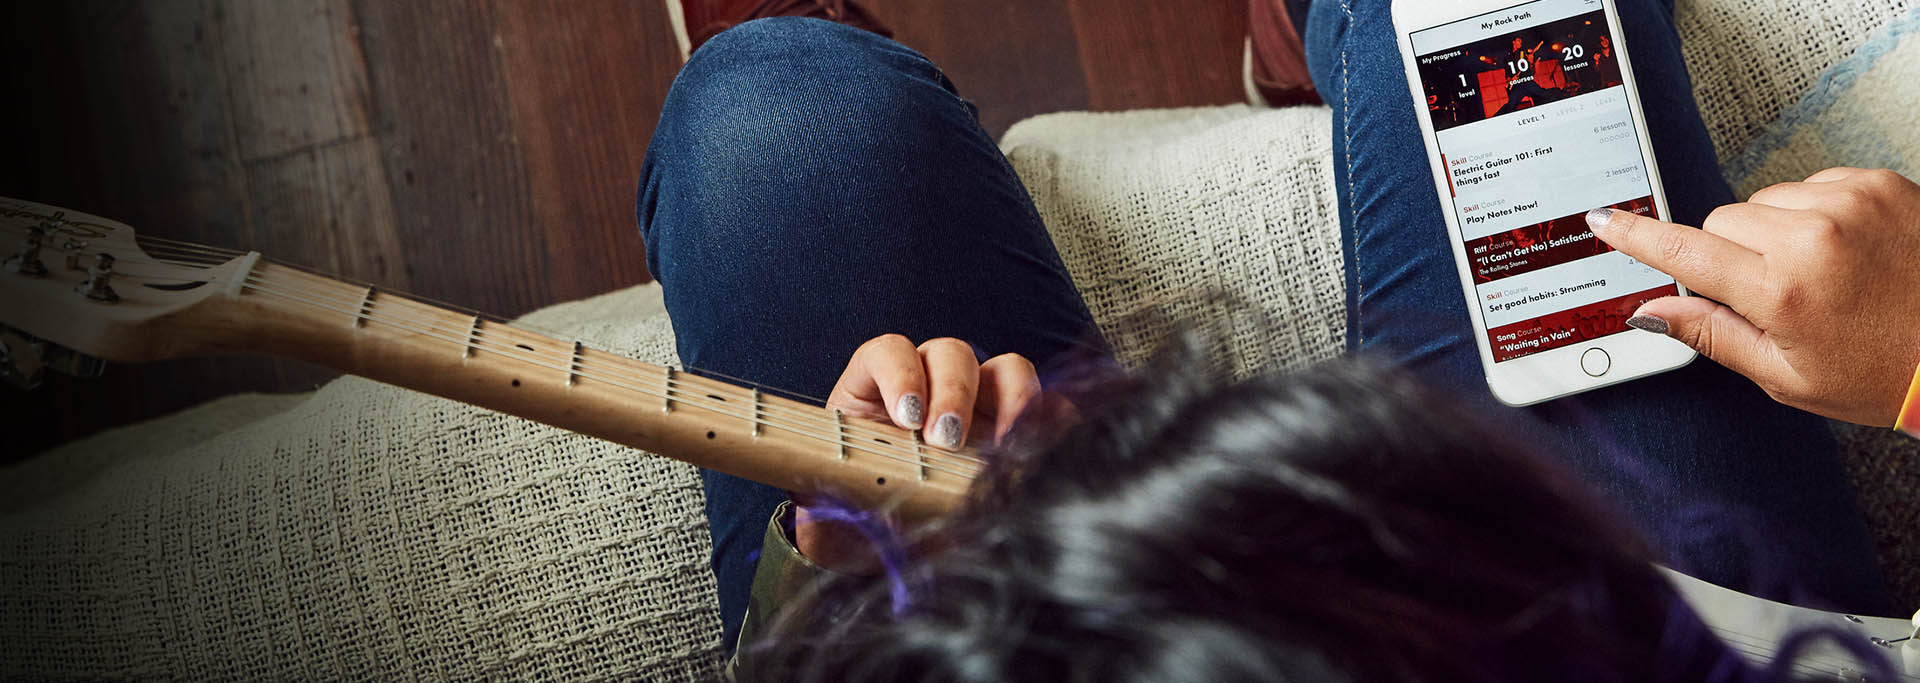 Fender Play: the easiest way to learn guitar